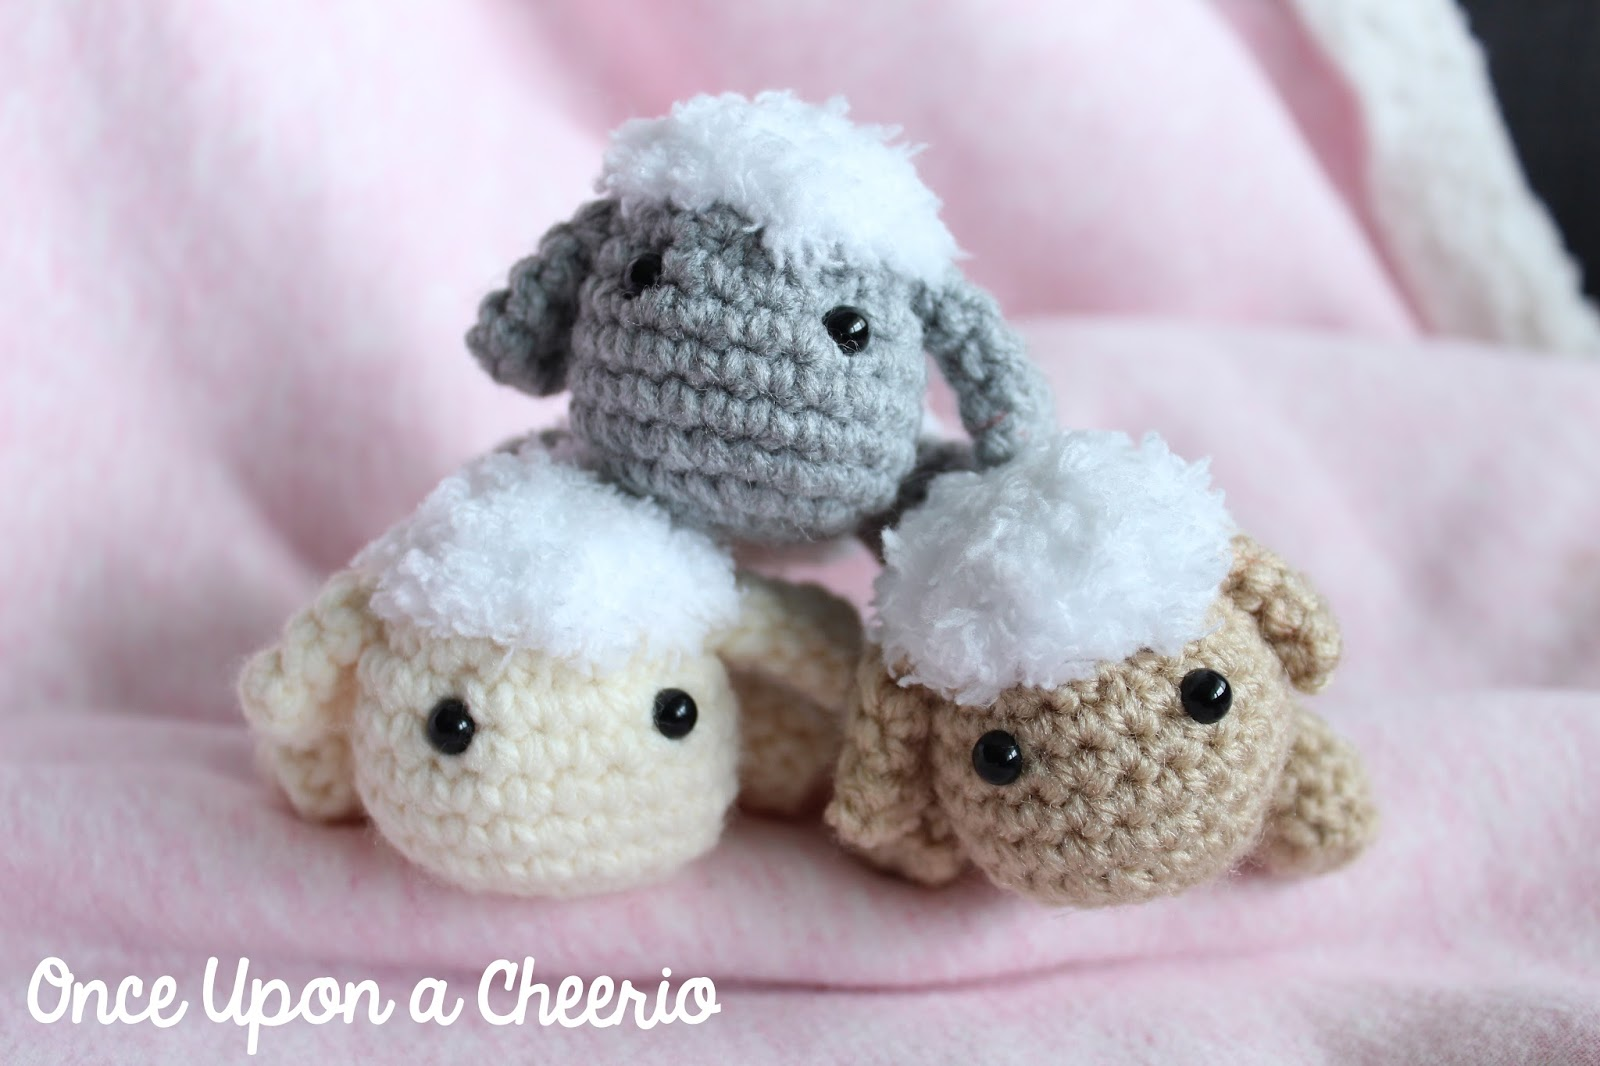 Rosemary The Lamb Crochet Pattern Once Upon A Cheerio On Go Pink Free